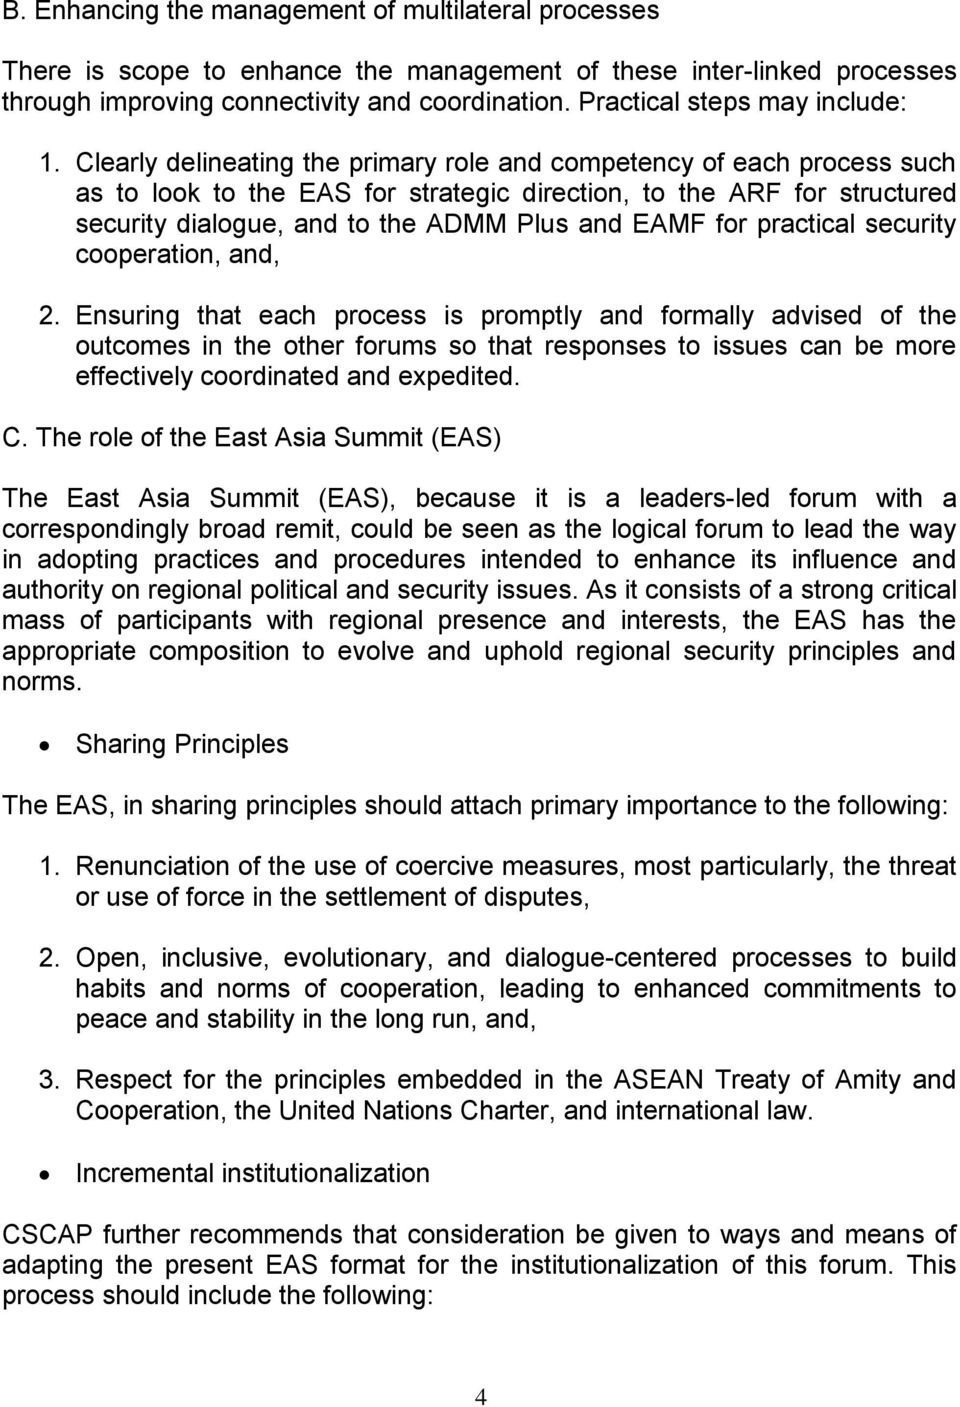 Clearly delineating the primary role and competency of each process such as to look to the EAS for strategic direction, to the ARF for structured security dialogue, and to the ADMM Plus and EAMF for